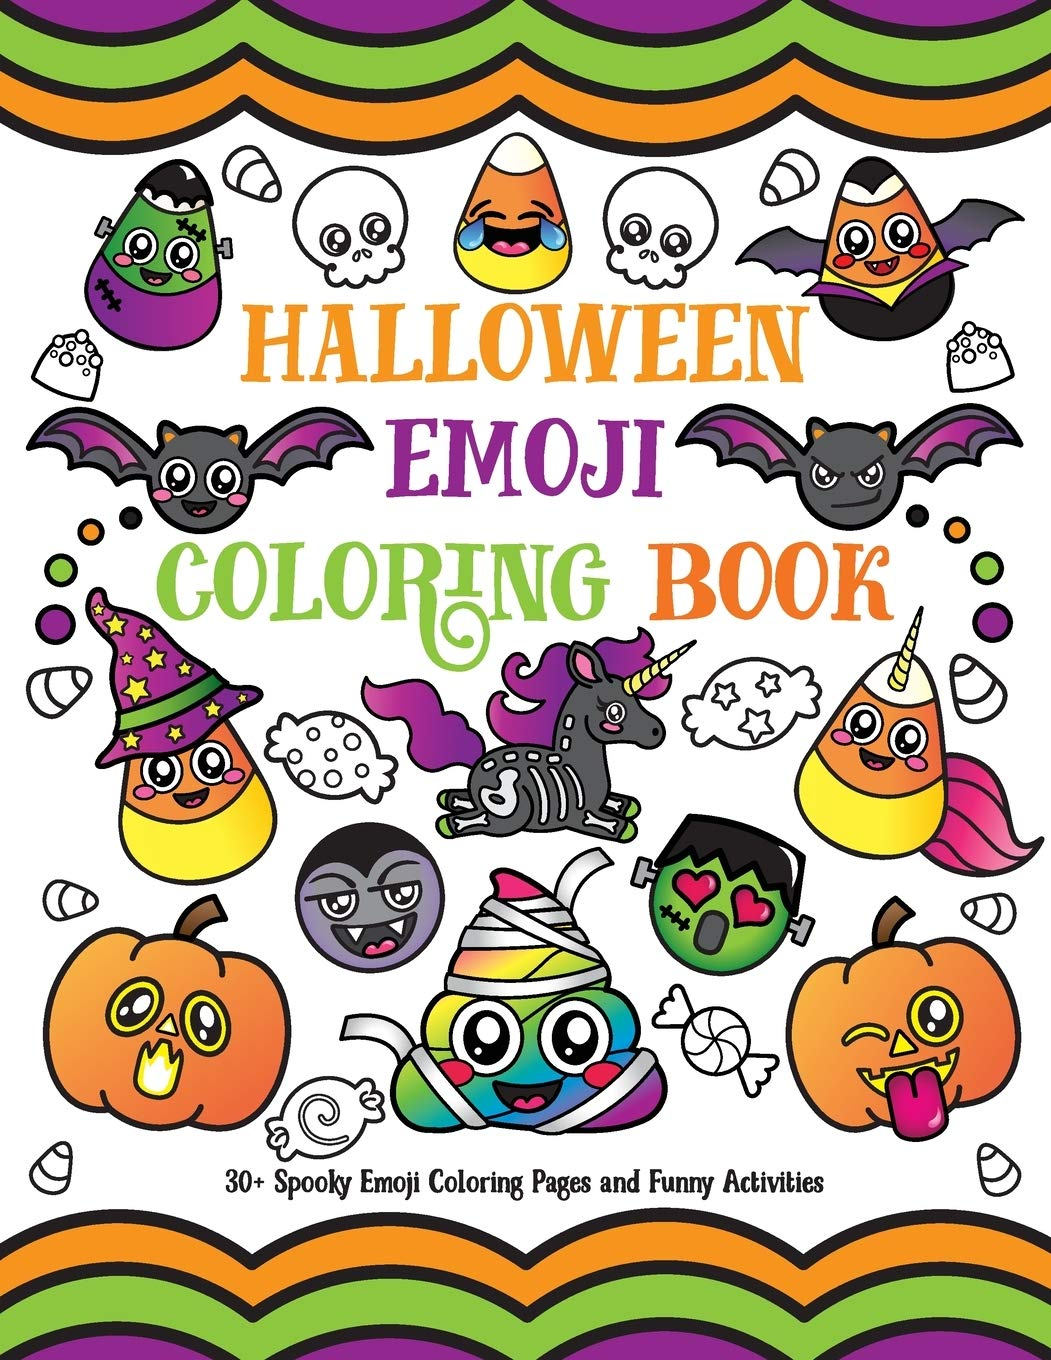 - Halloween Emoji Coloring Book: 30+ Spooky Emoji Coloring Pages And